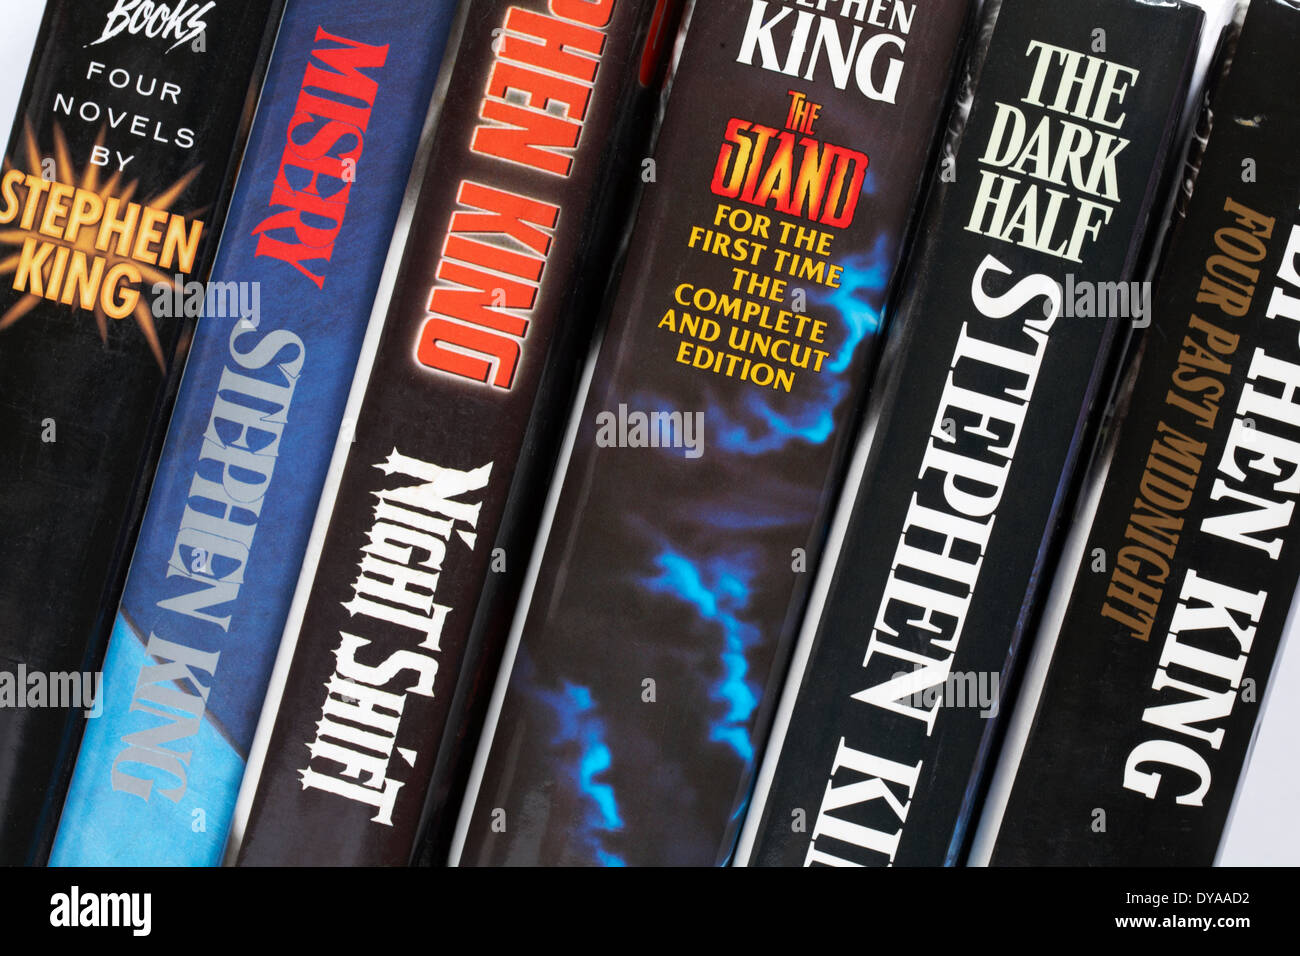 row of Stephen King books including Four Past Midnight, The Dark Half, the Stand, Night Shift, Misery and Four Novels by Stephen King - Stock Image